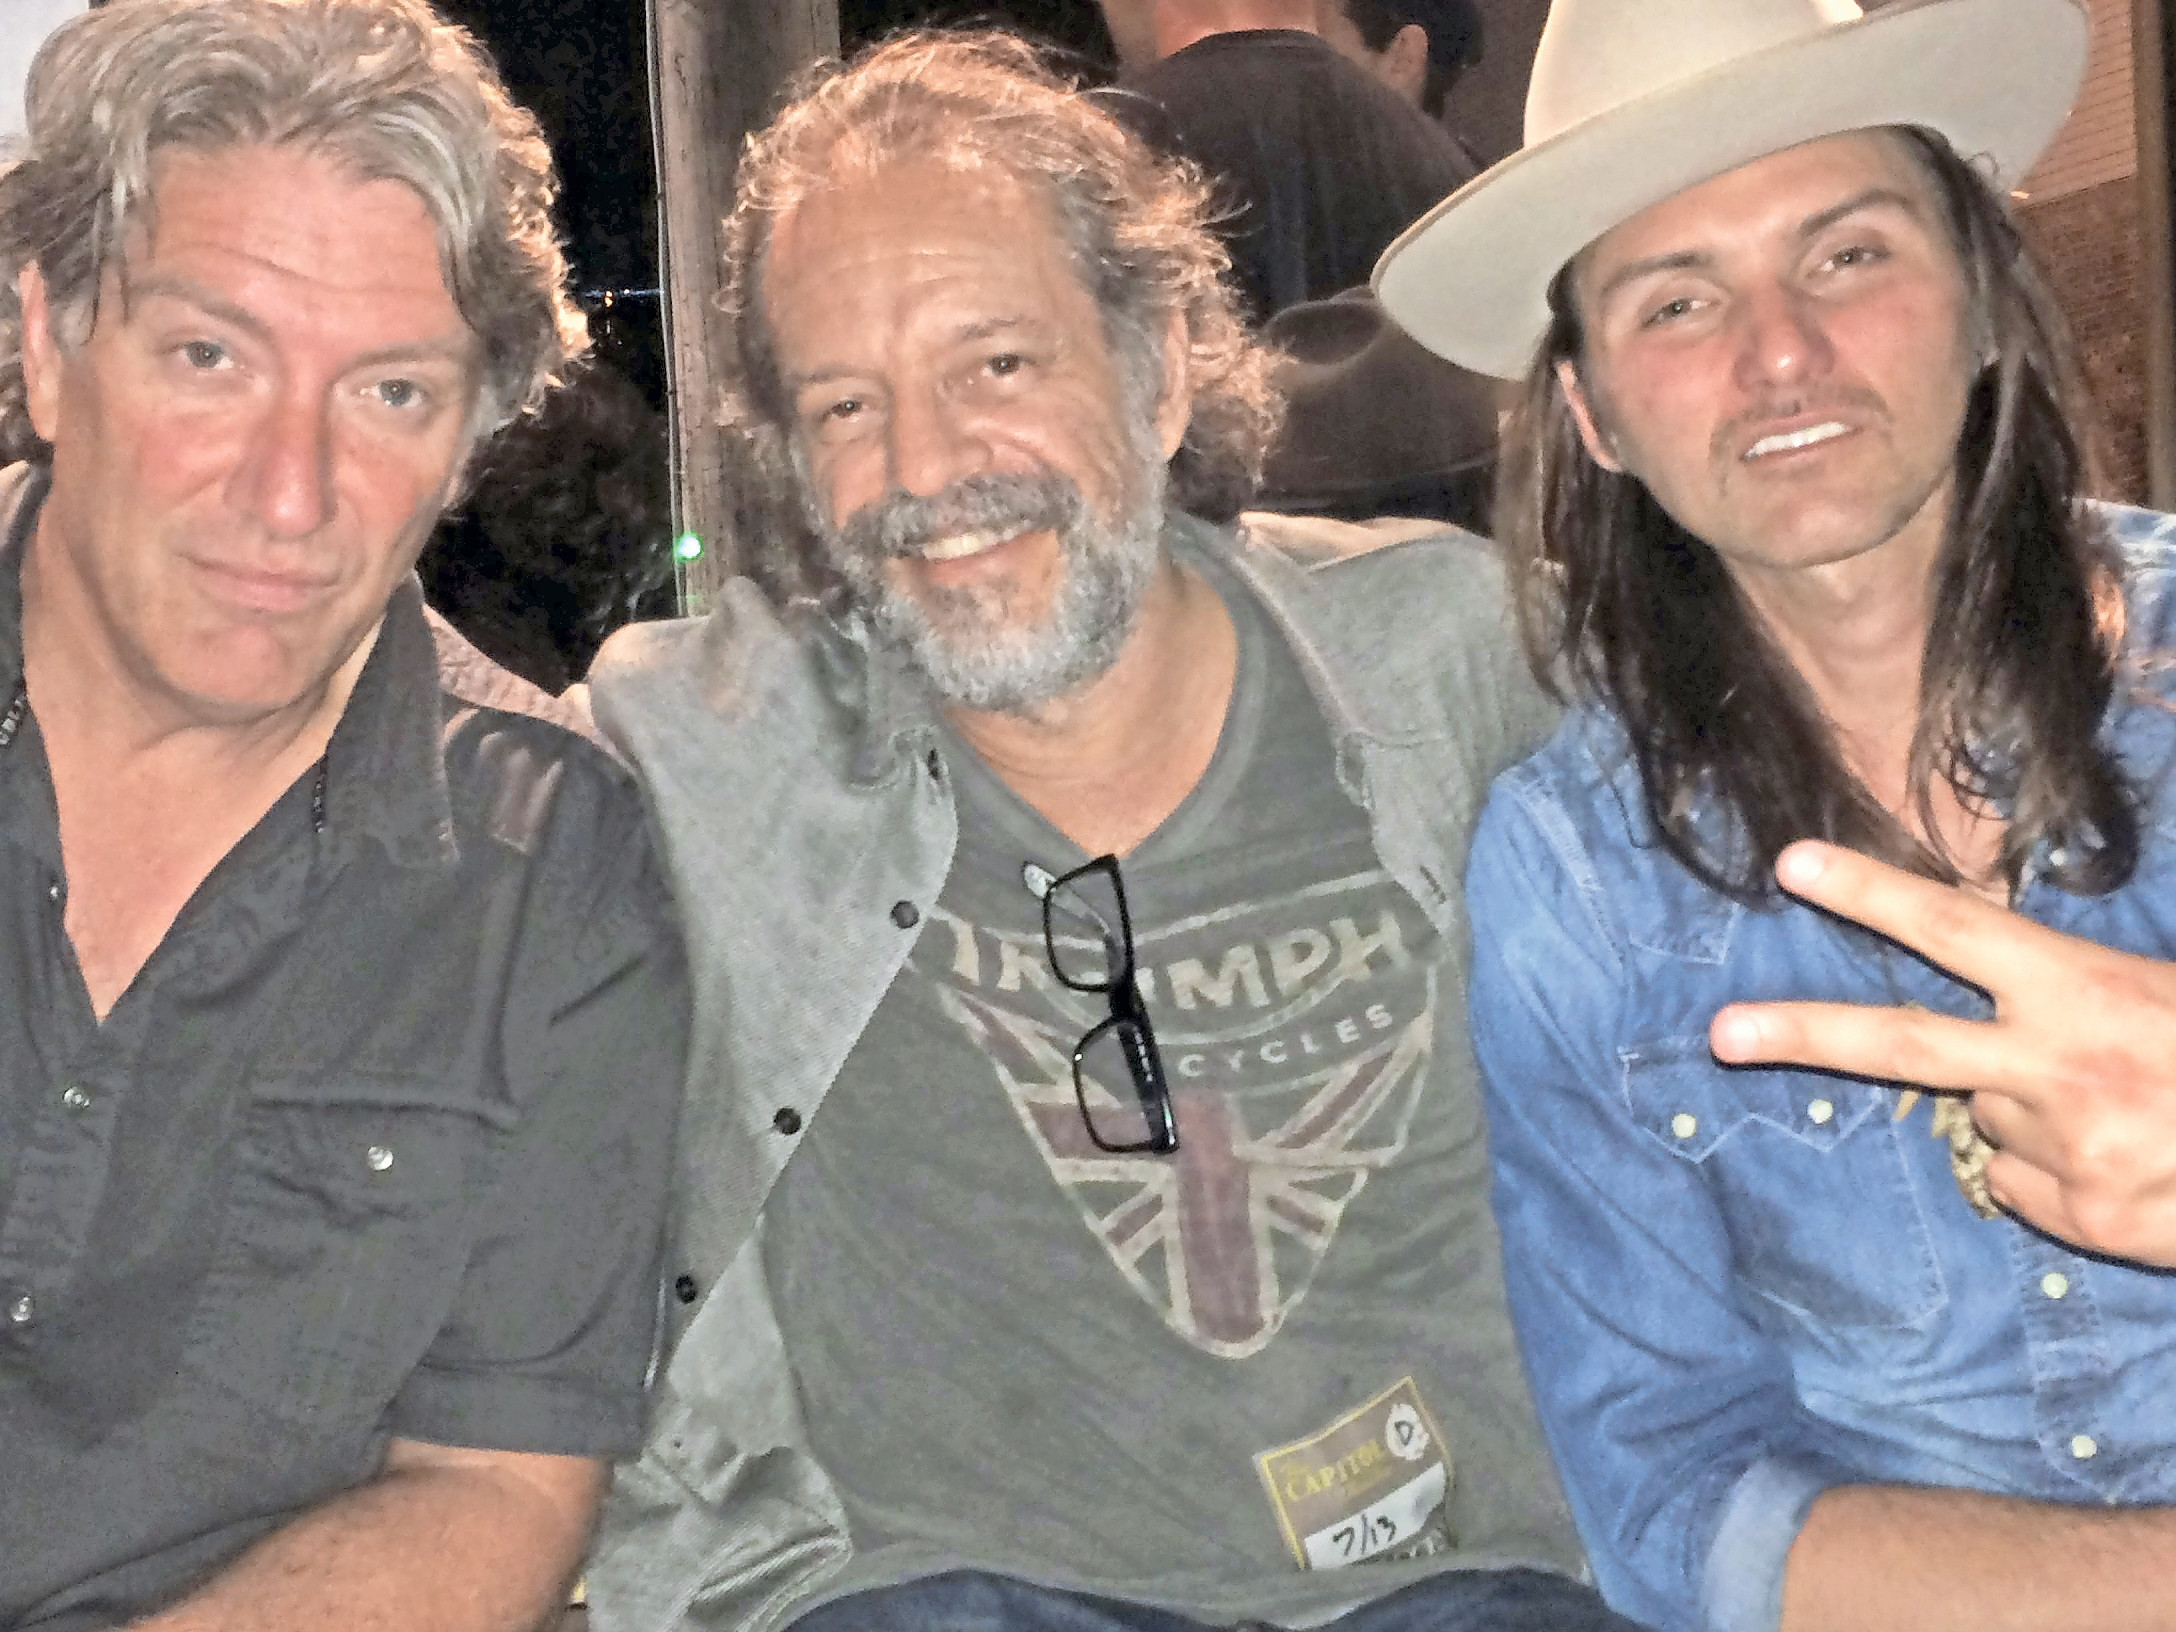 Sea Cliff musicians Chris Kinnear, from left, and Andy Aledort with Dickey Betts's son, Duane, after a Dawes concert in which Duane Betts performed last July.